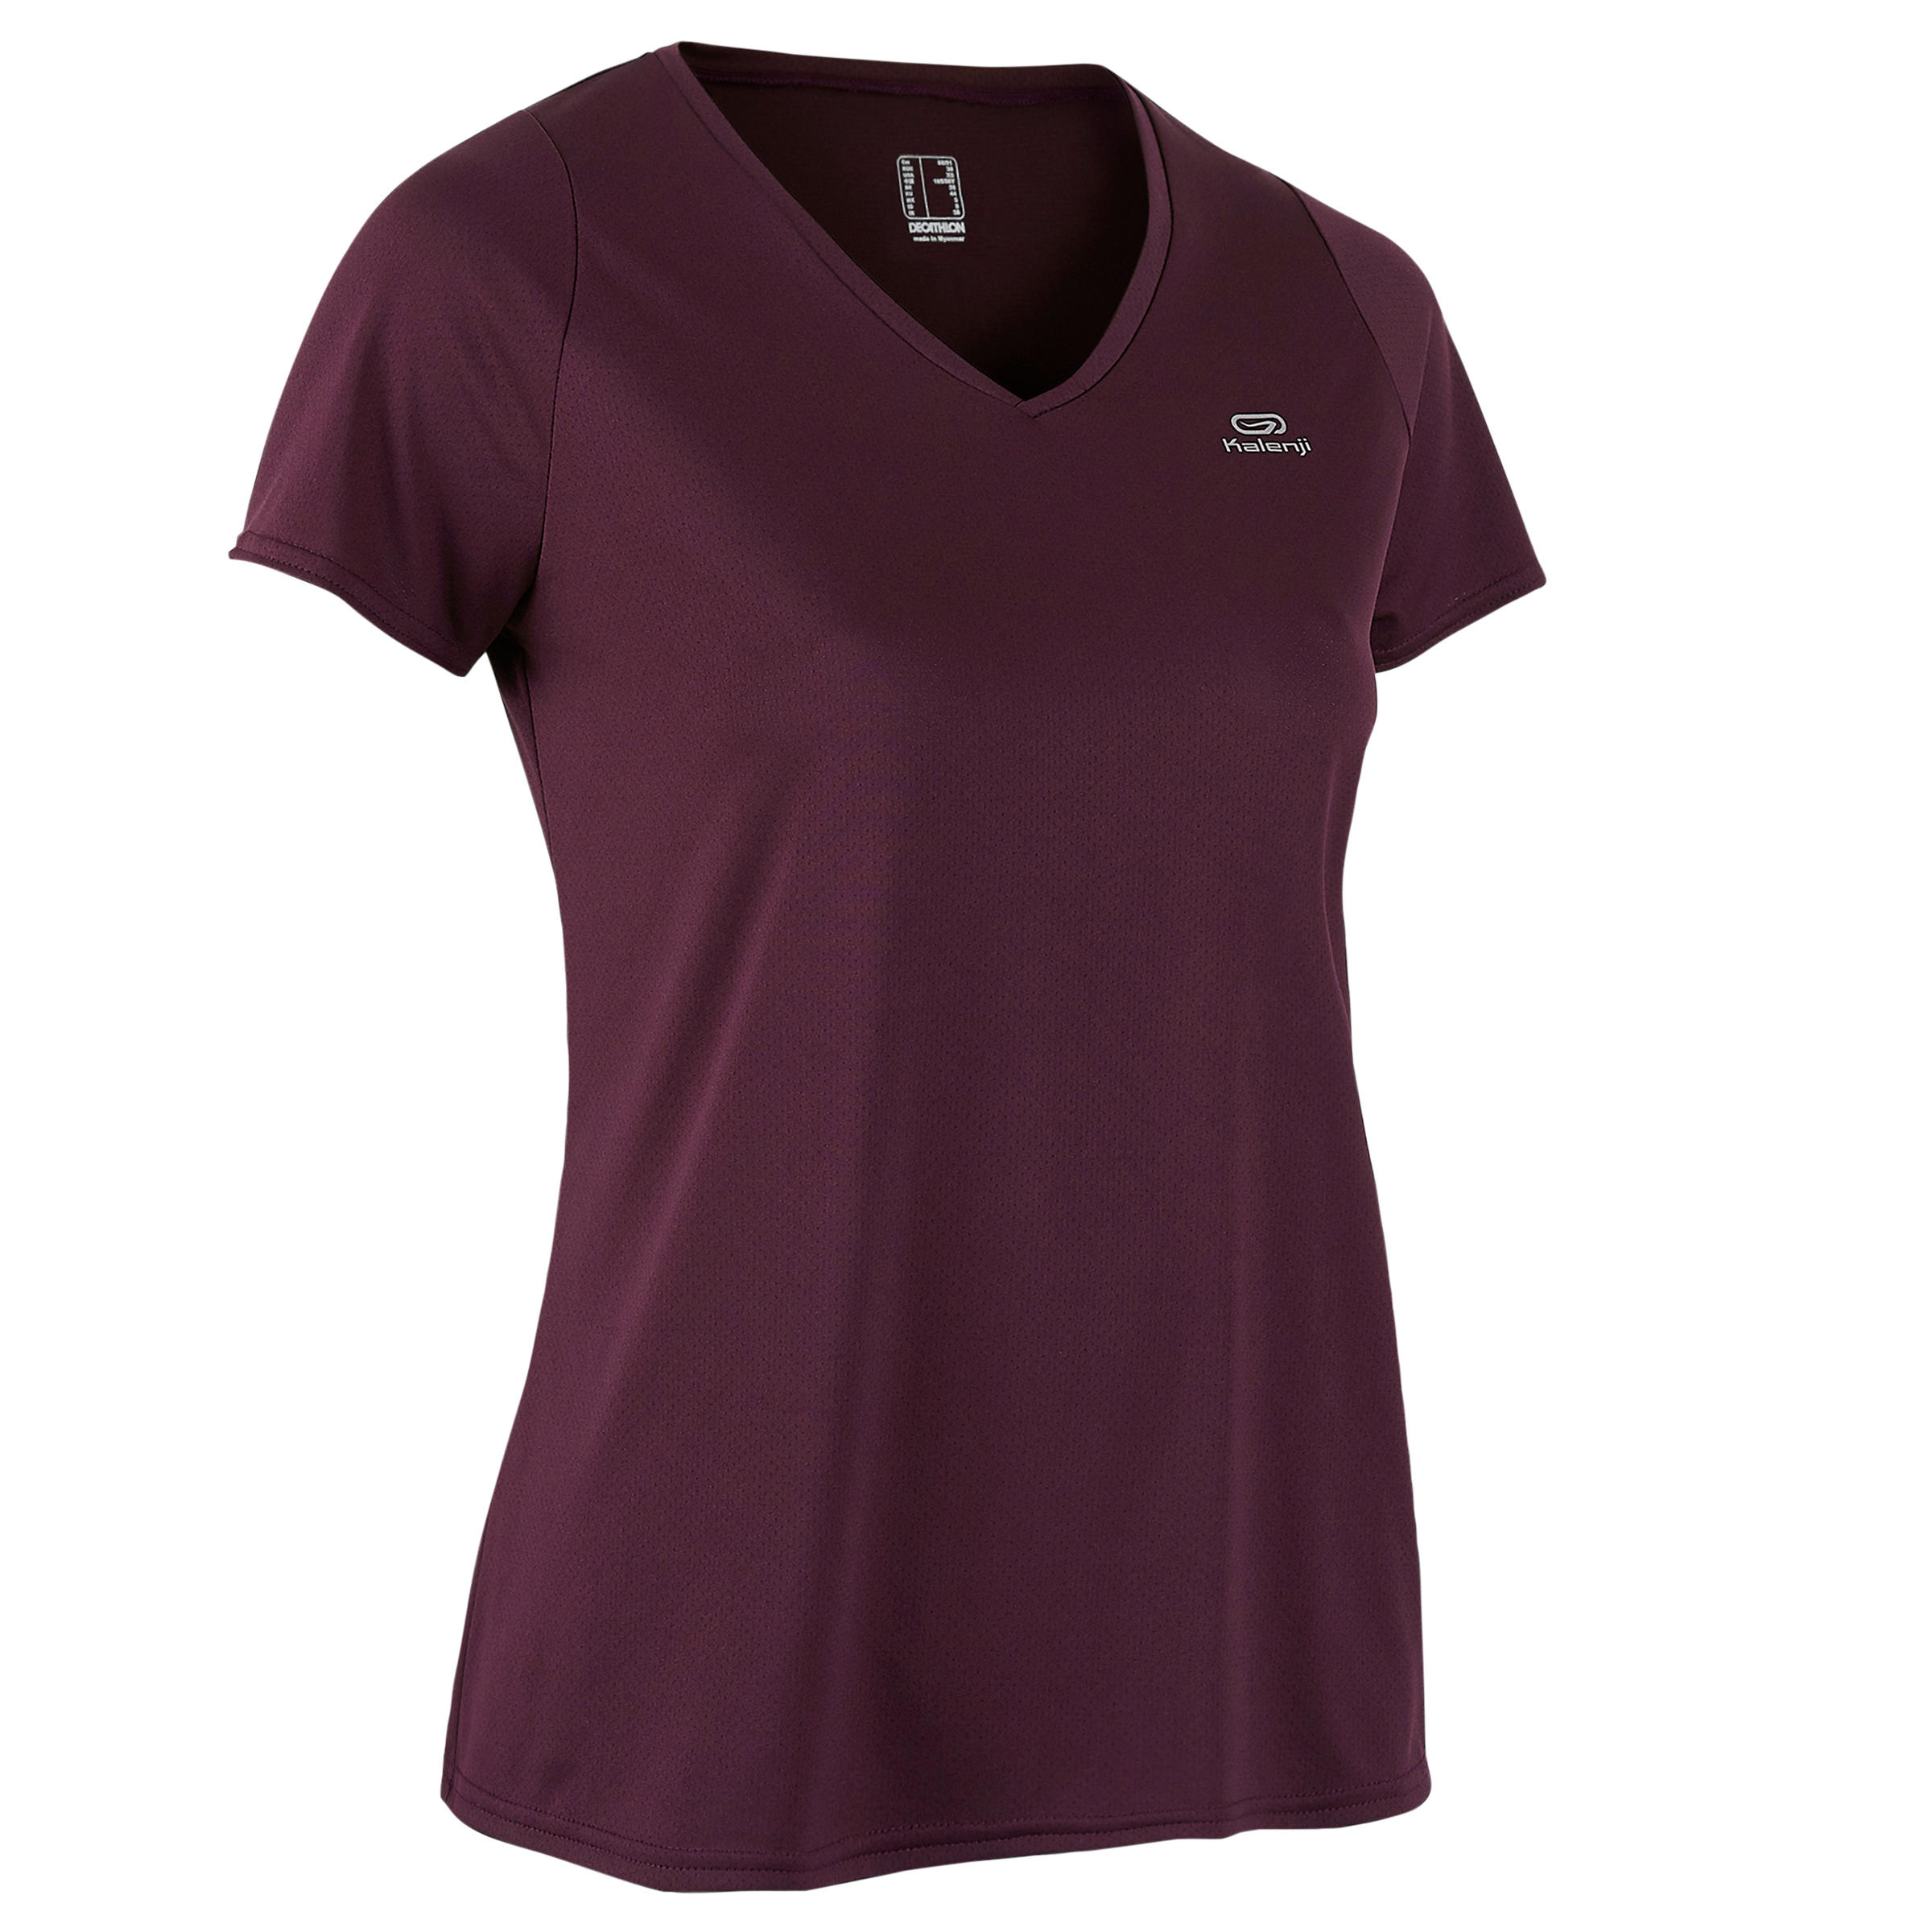 Run Dry Women's Running T-shirt - Plum